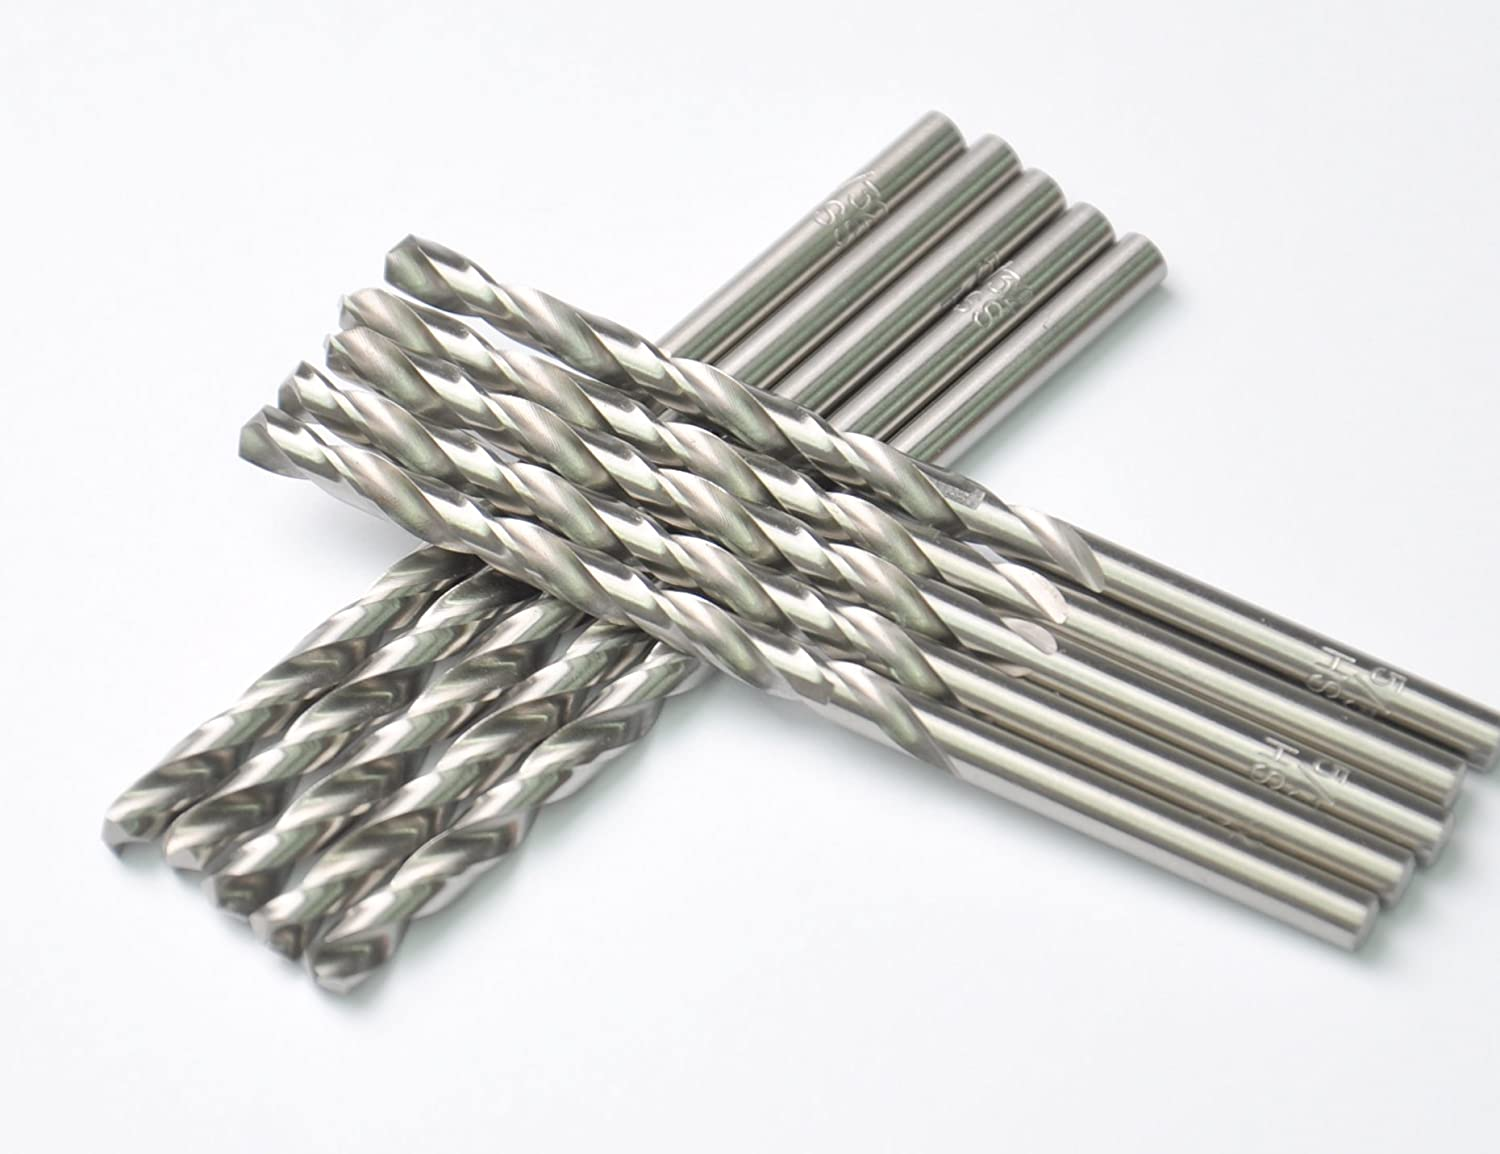 Aluminum Ideal for Drilling on mild Steel Fully Ground with White Finished Copper 7//64 Metal Drill 10 PCS,7//64 HSS Jobber Length Twist Drill Bits Zinc Alloy etc